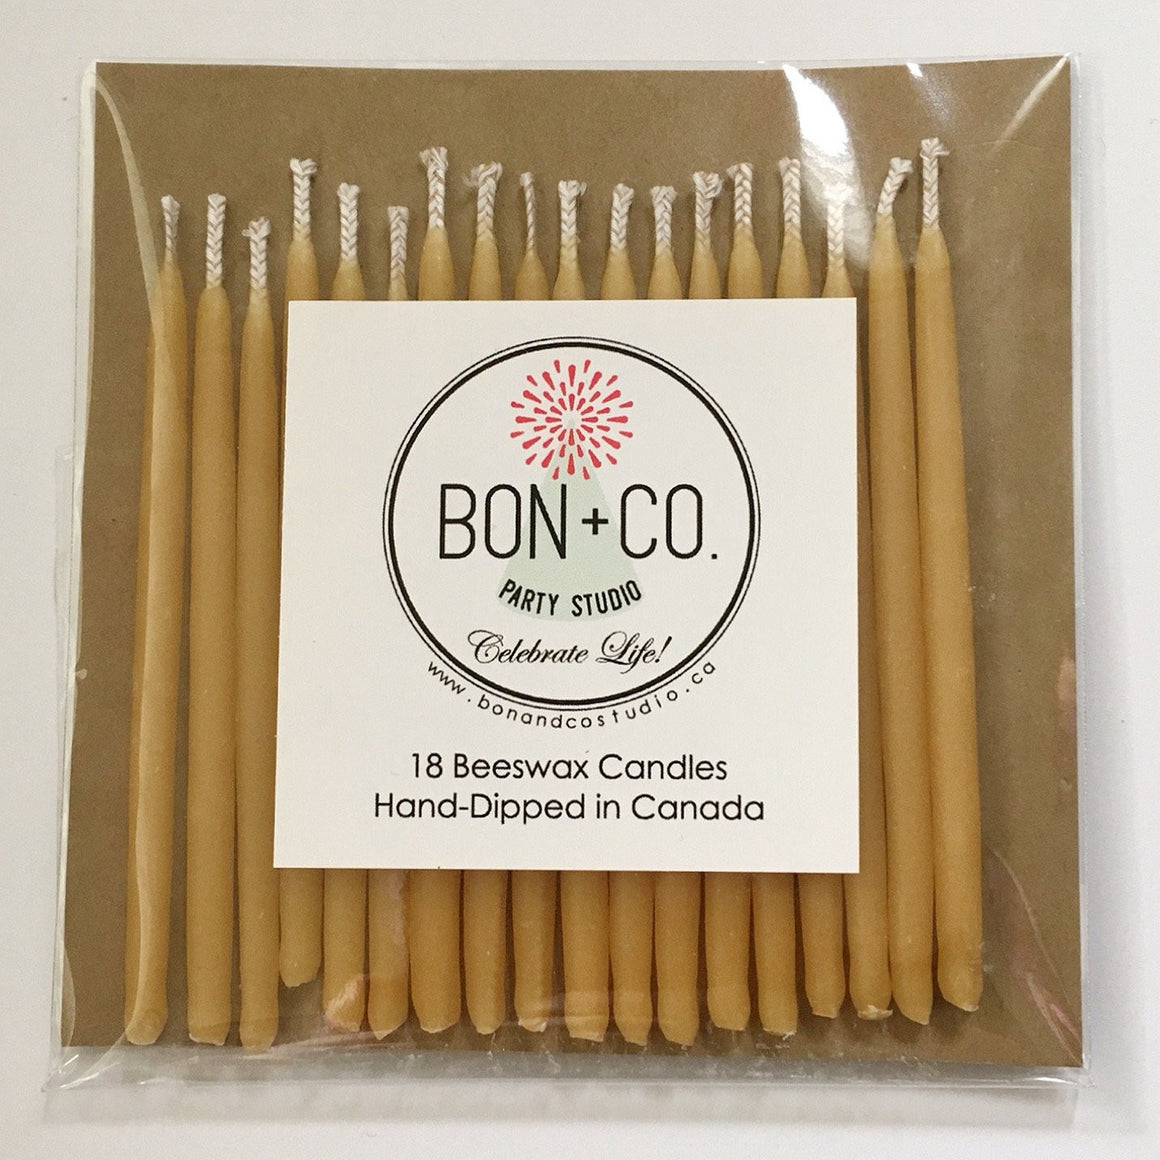 NATURAL PARTY CANDLES - BEESWAX NATURAL, Candles + Sparklers, BON + CO - Bon + Co. Party Studio